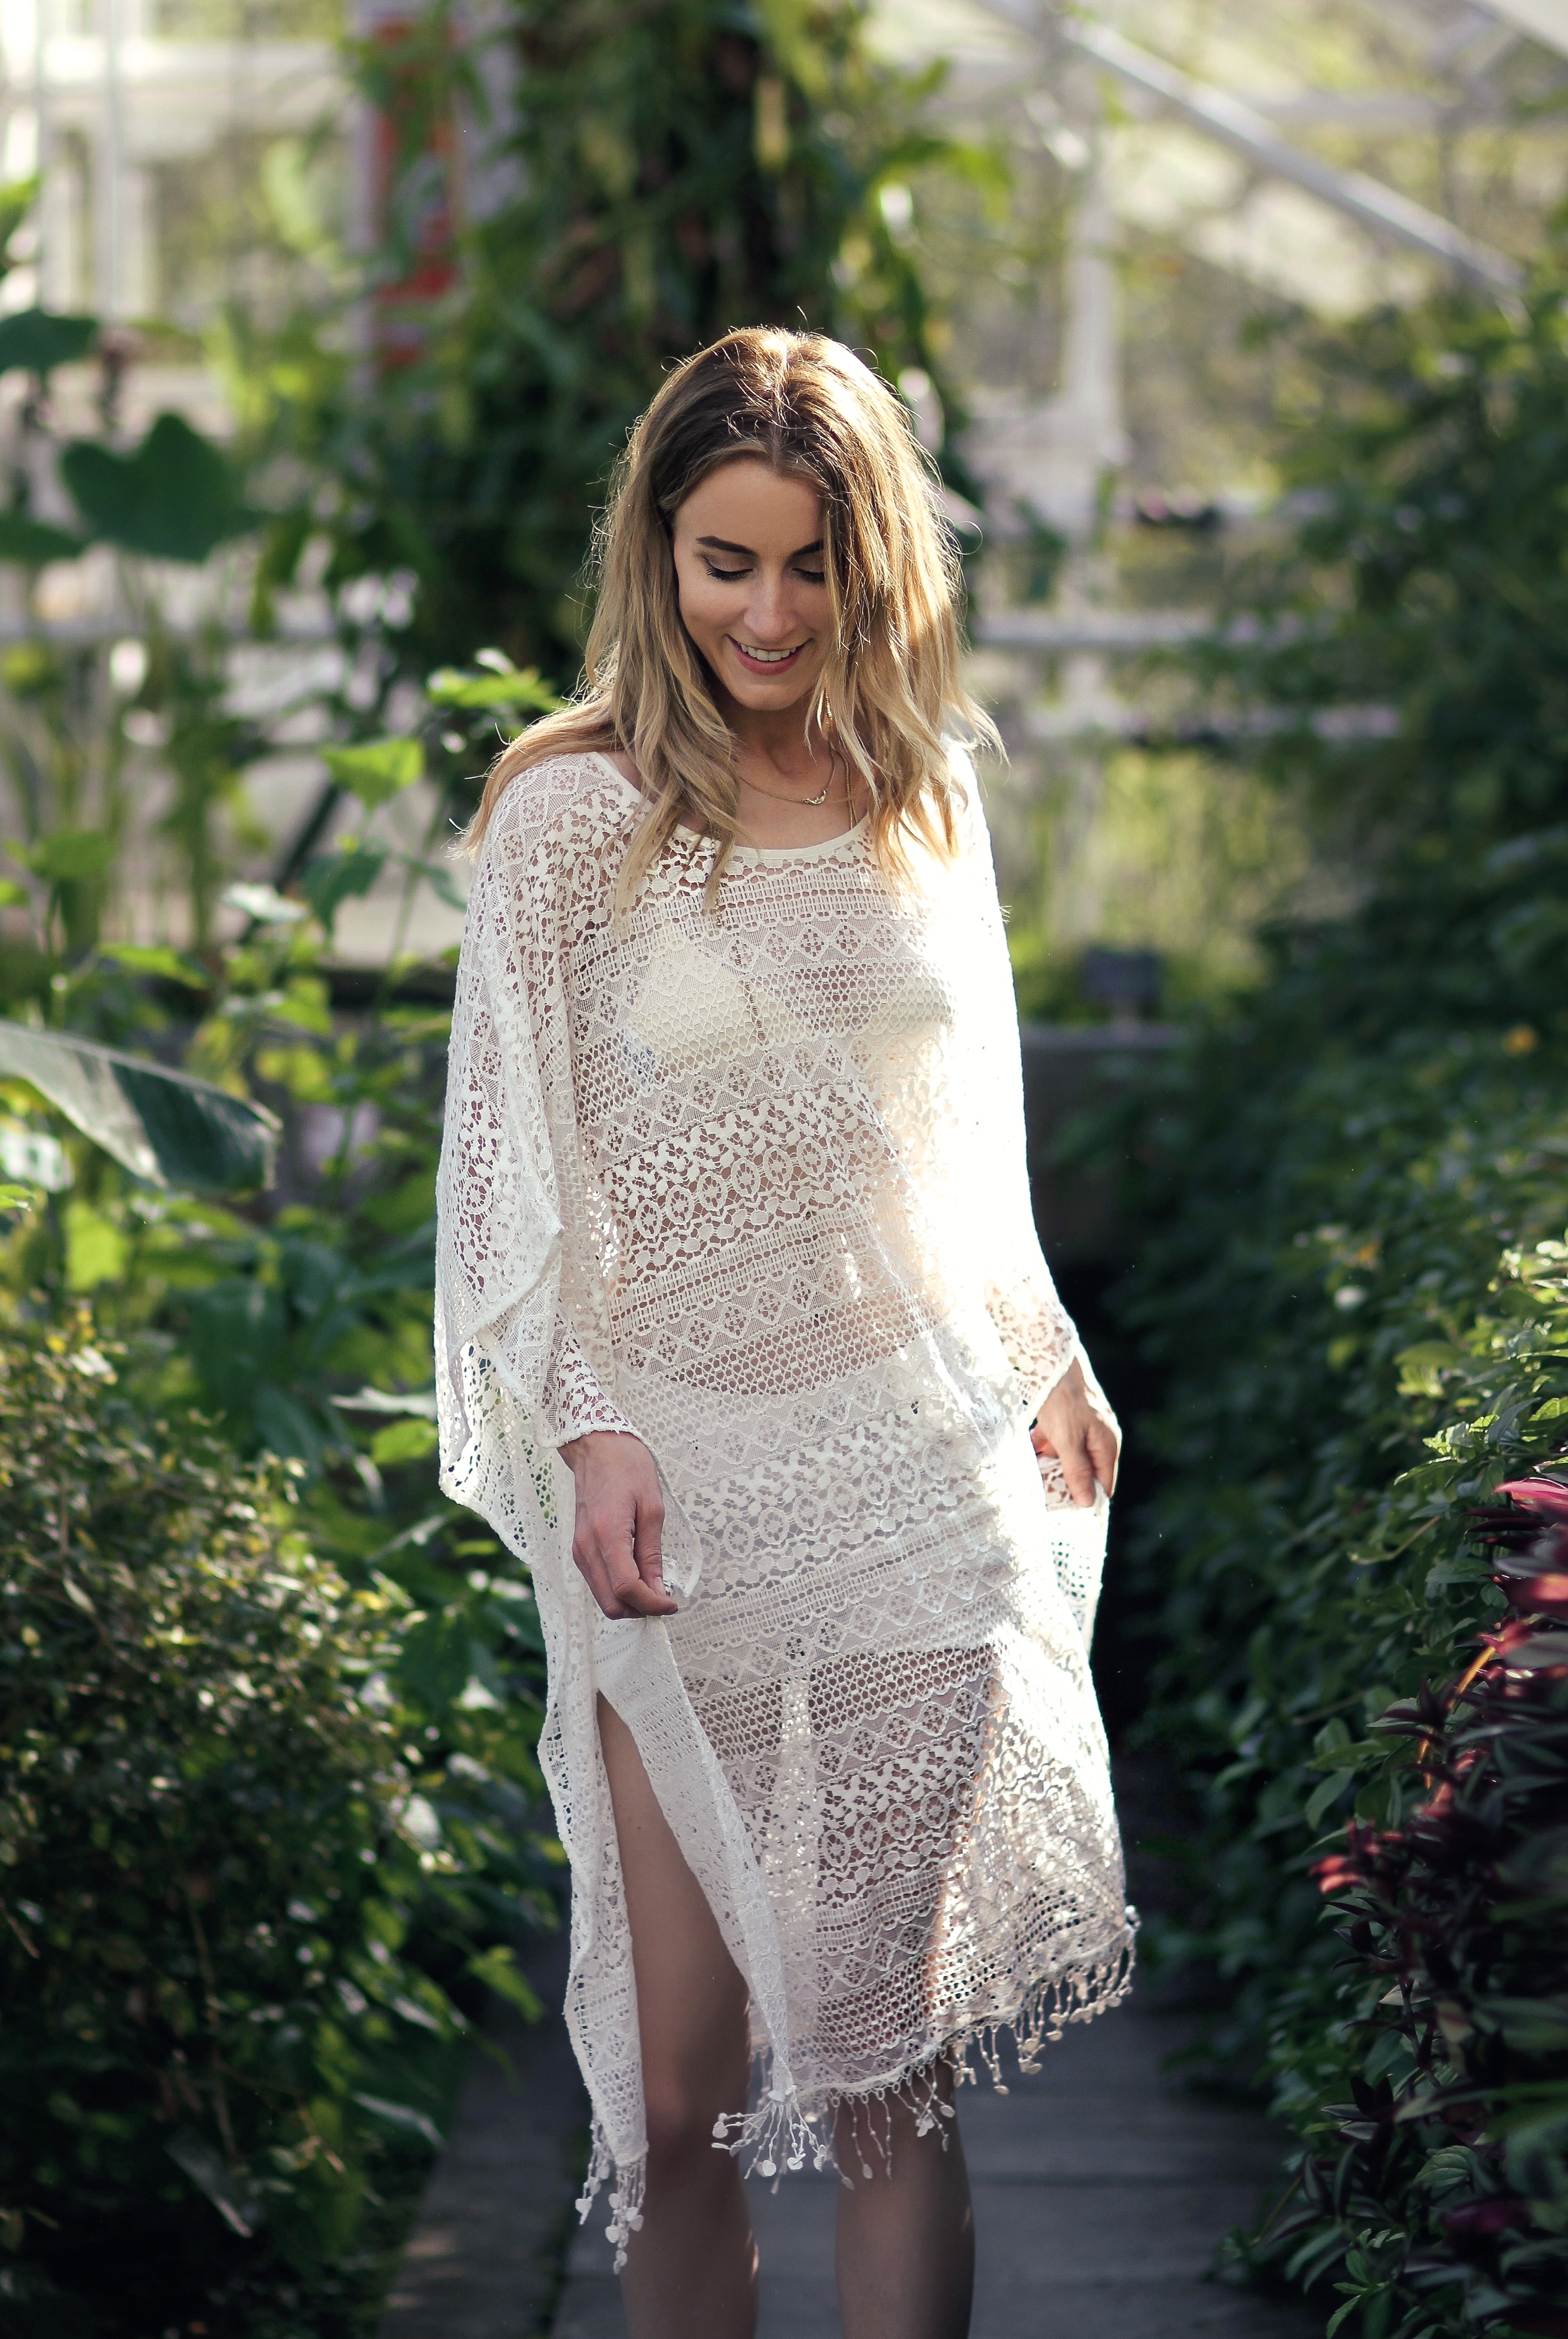 Lace Outfit Ideas: Noor De Groot is wearing a white lace tunic